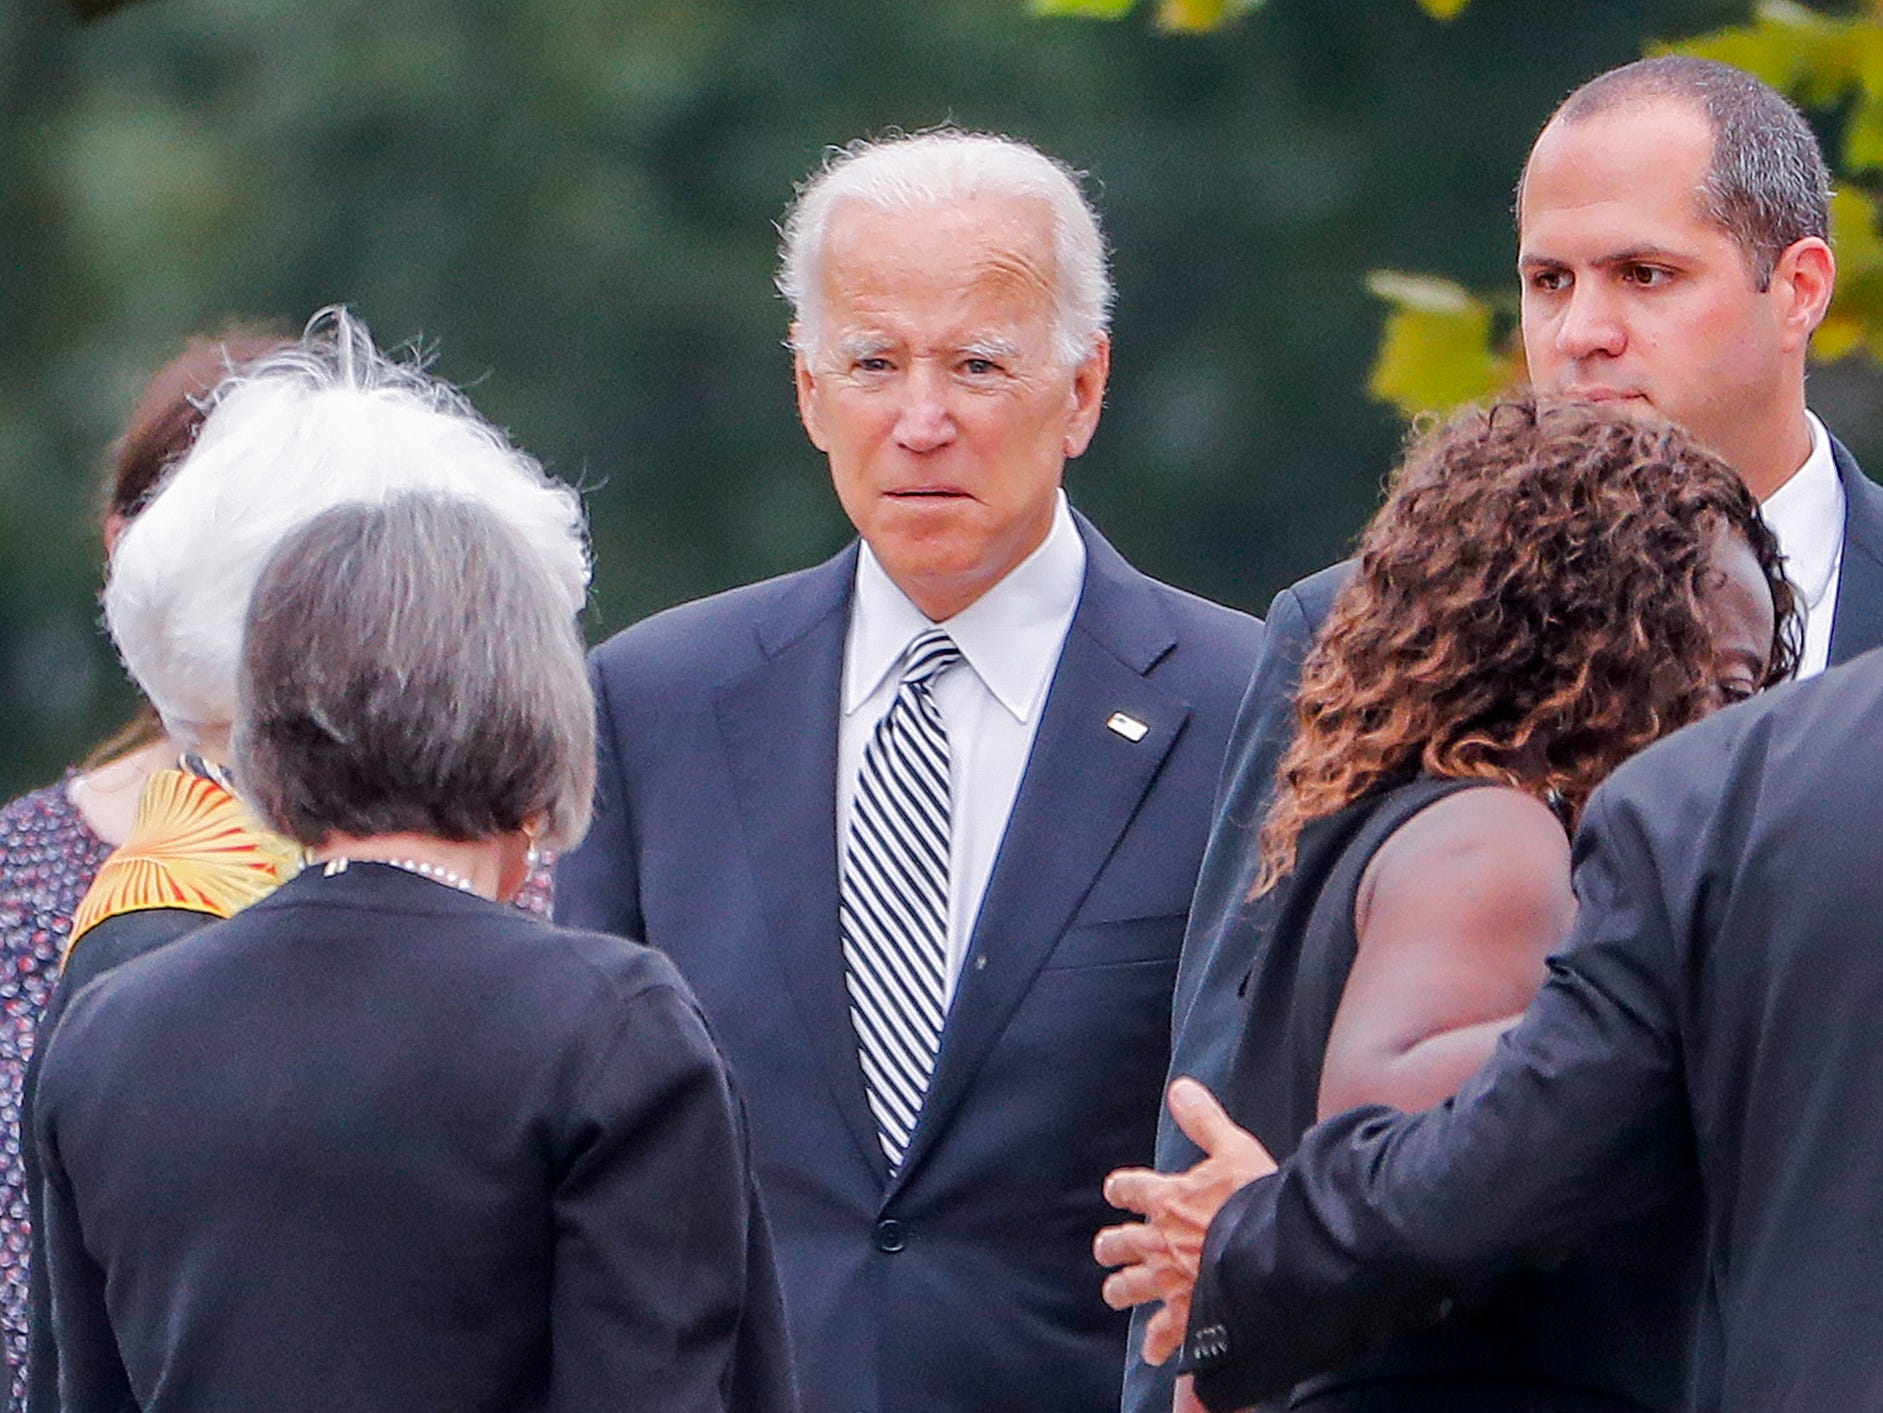 Former US Vice President Joe Biden (C) arrives for the memorial service for his good friend Senator John McCain at the Washington National Cathedral.